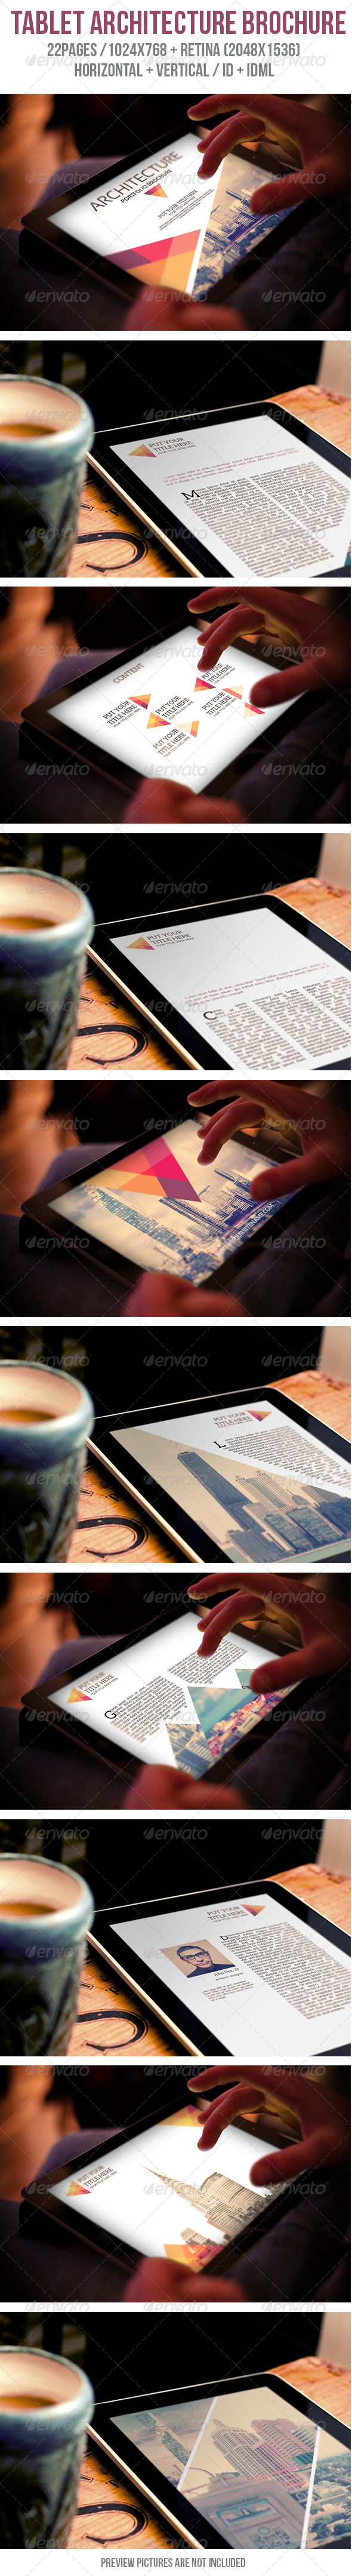 GraphicRiver Tablet Architecture Porfolio Brochure 6063907